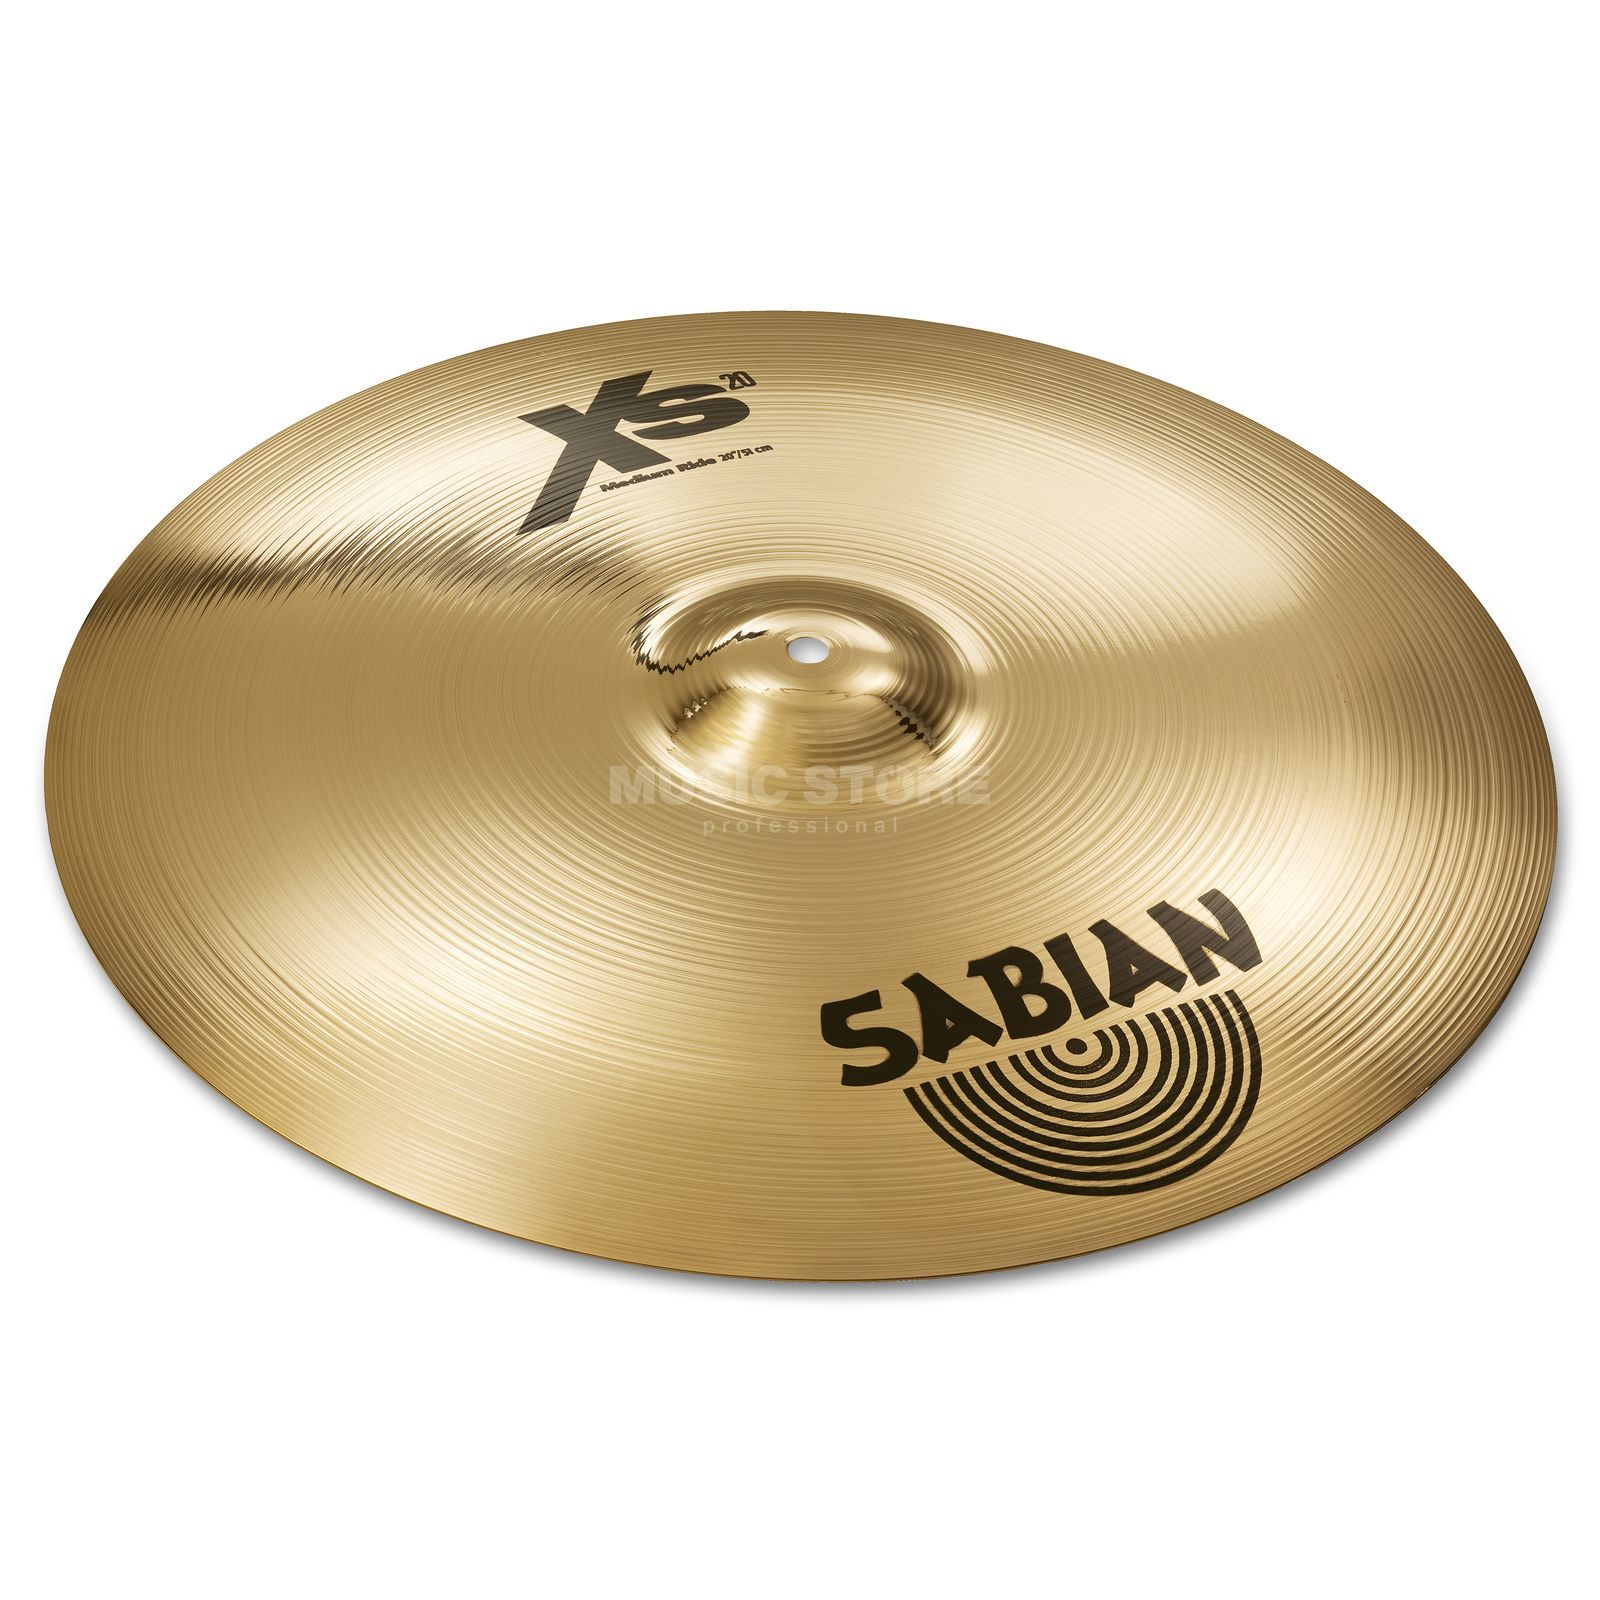 "Sabian XS20 Medium Ride 20"", Brilliant Finish Zdjęcie produktu"